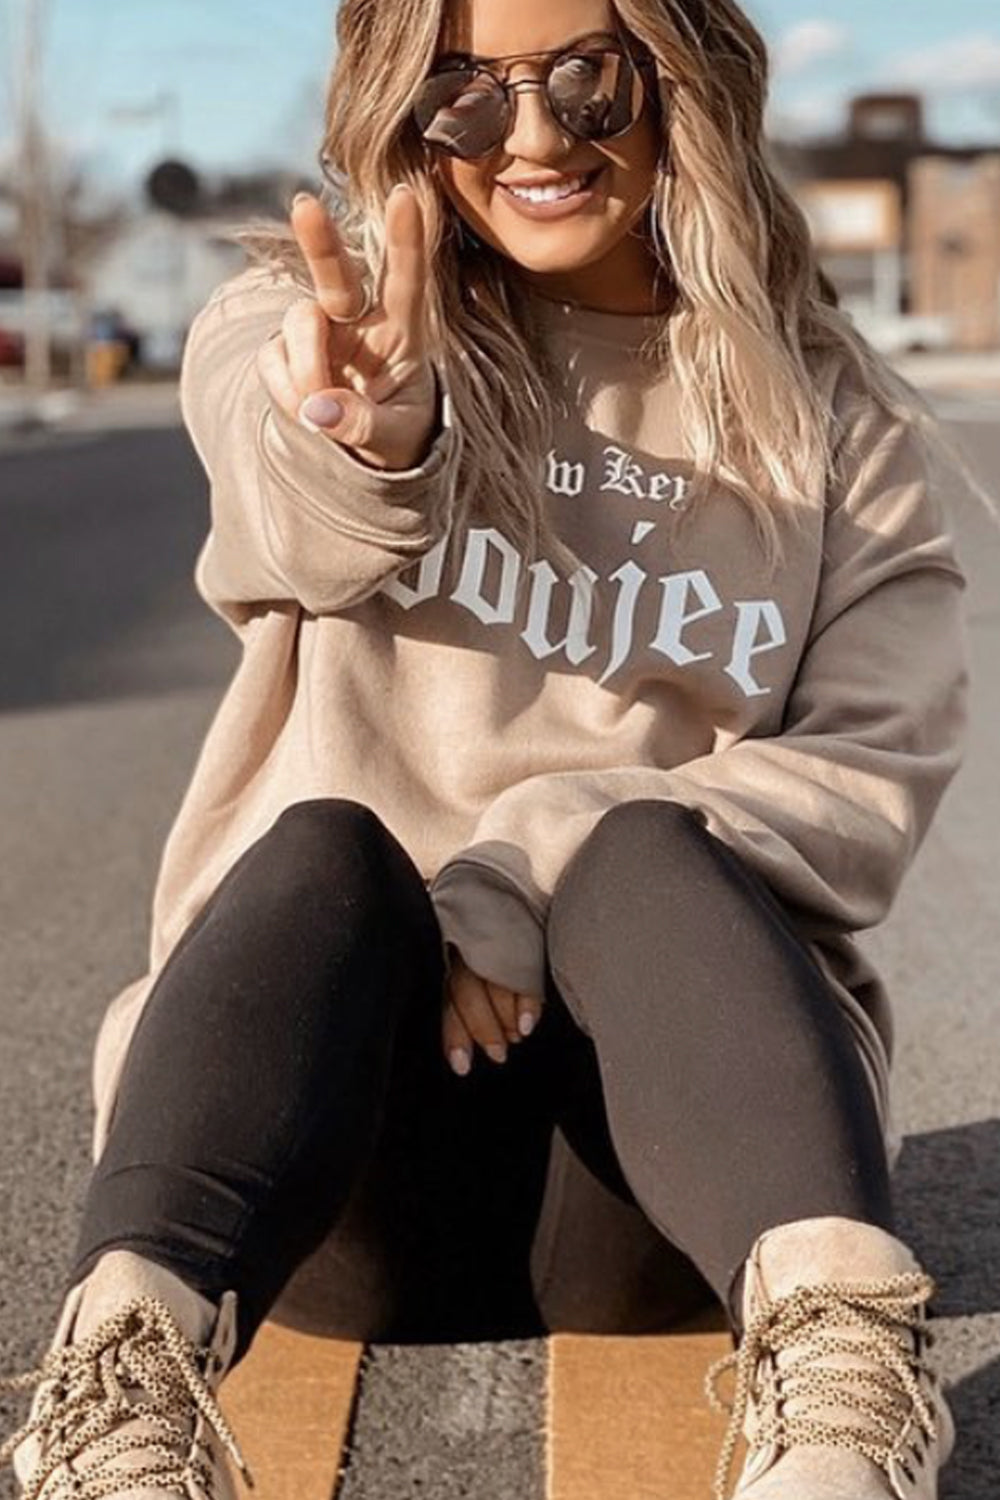 WOMEN'S PRESLIE CREWNECK - Low Key Boujee